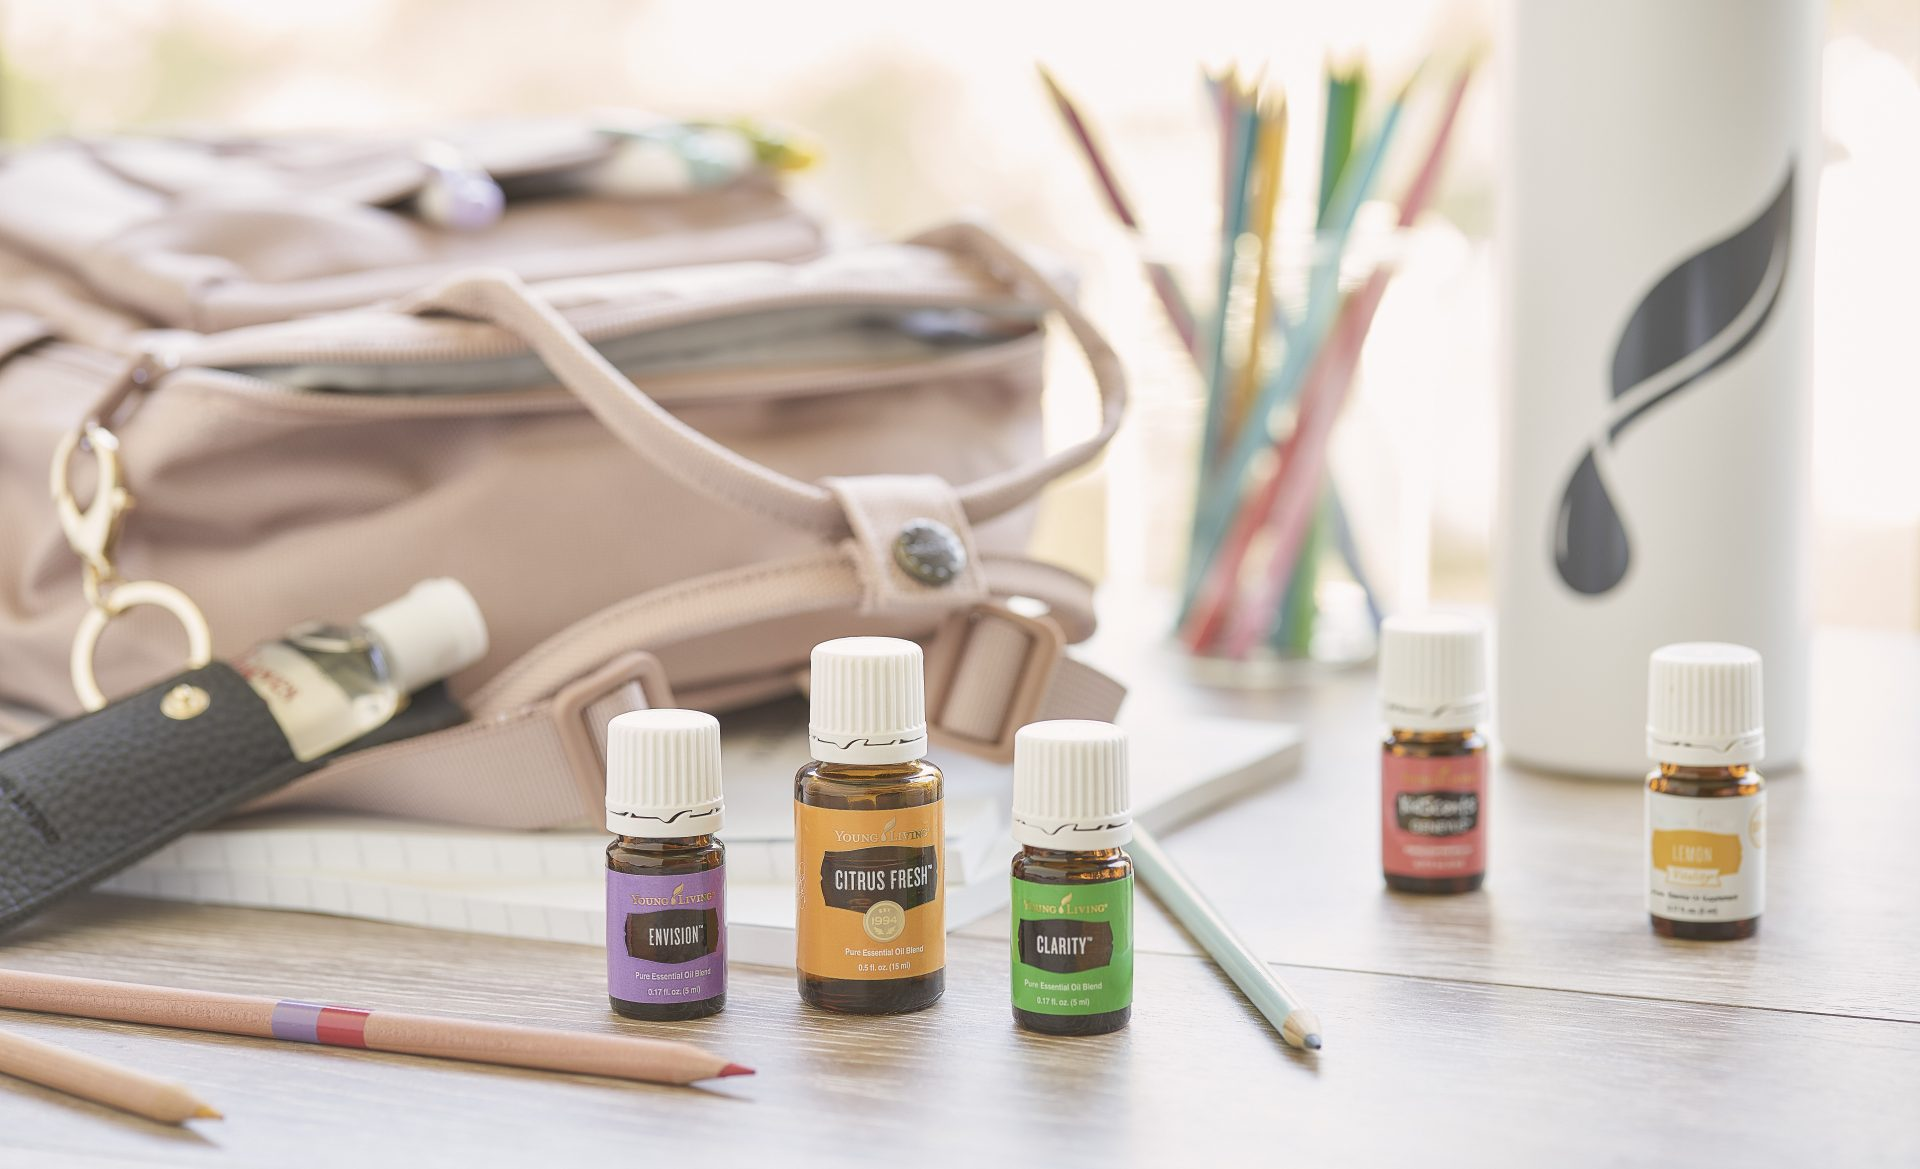 Envision, Citrus Fresh, Clarity, KidScents GeneYus, and Lemon Vitality essential oils surrounded by a backpack, YL Gear Drop bottle, Madison hand sanitizer holder, and other school supplies - Young Living Lavender Life Blog